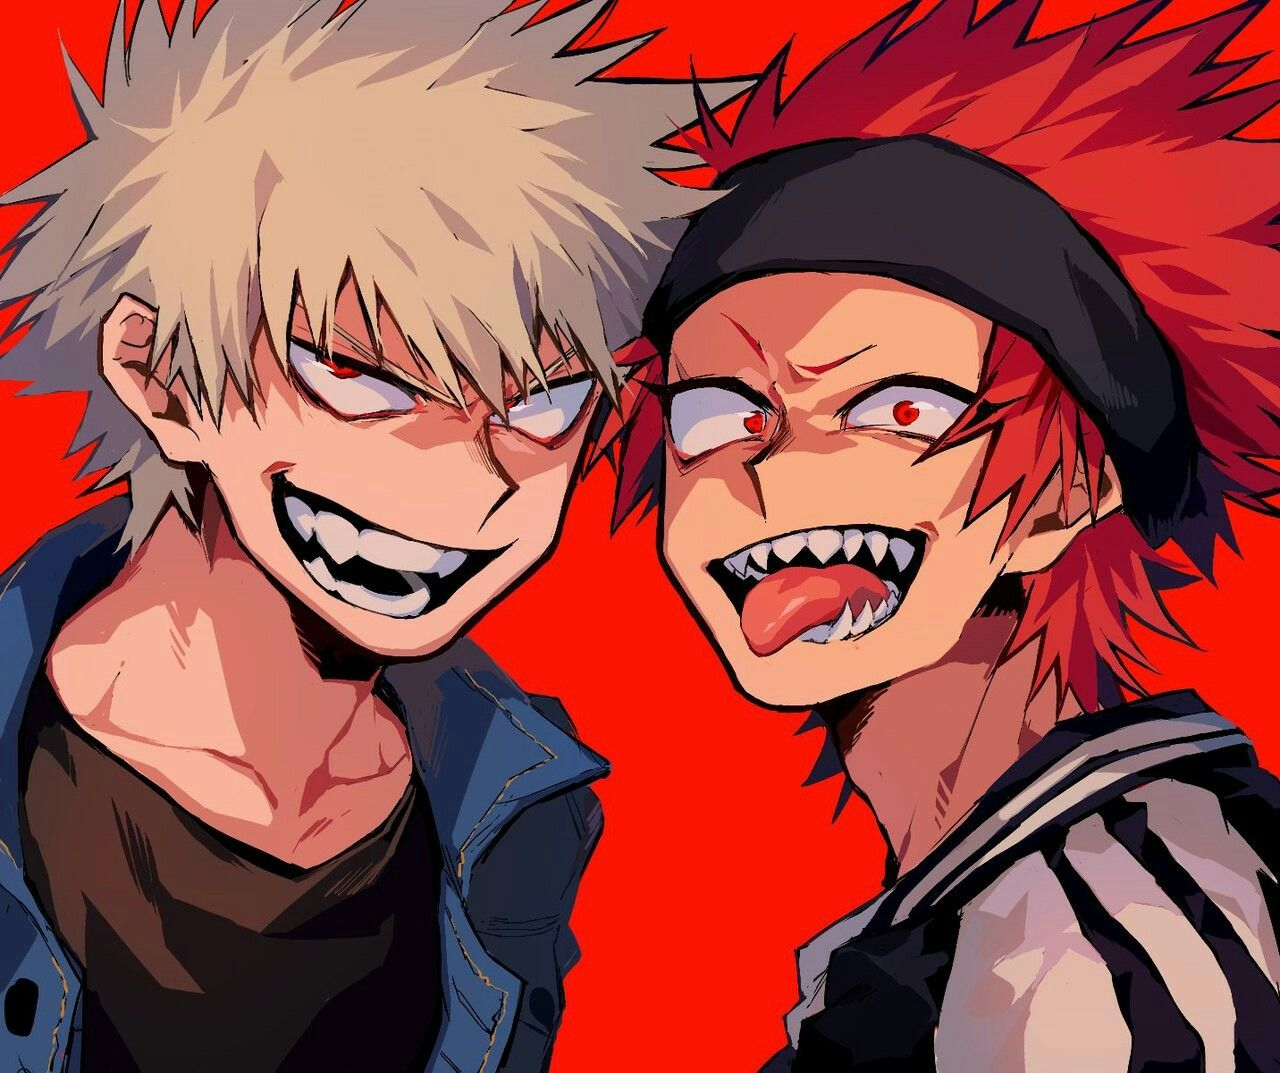 I Thought Bakugou Was Missing An Iris And Pupil For A